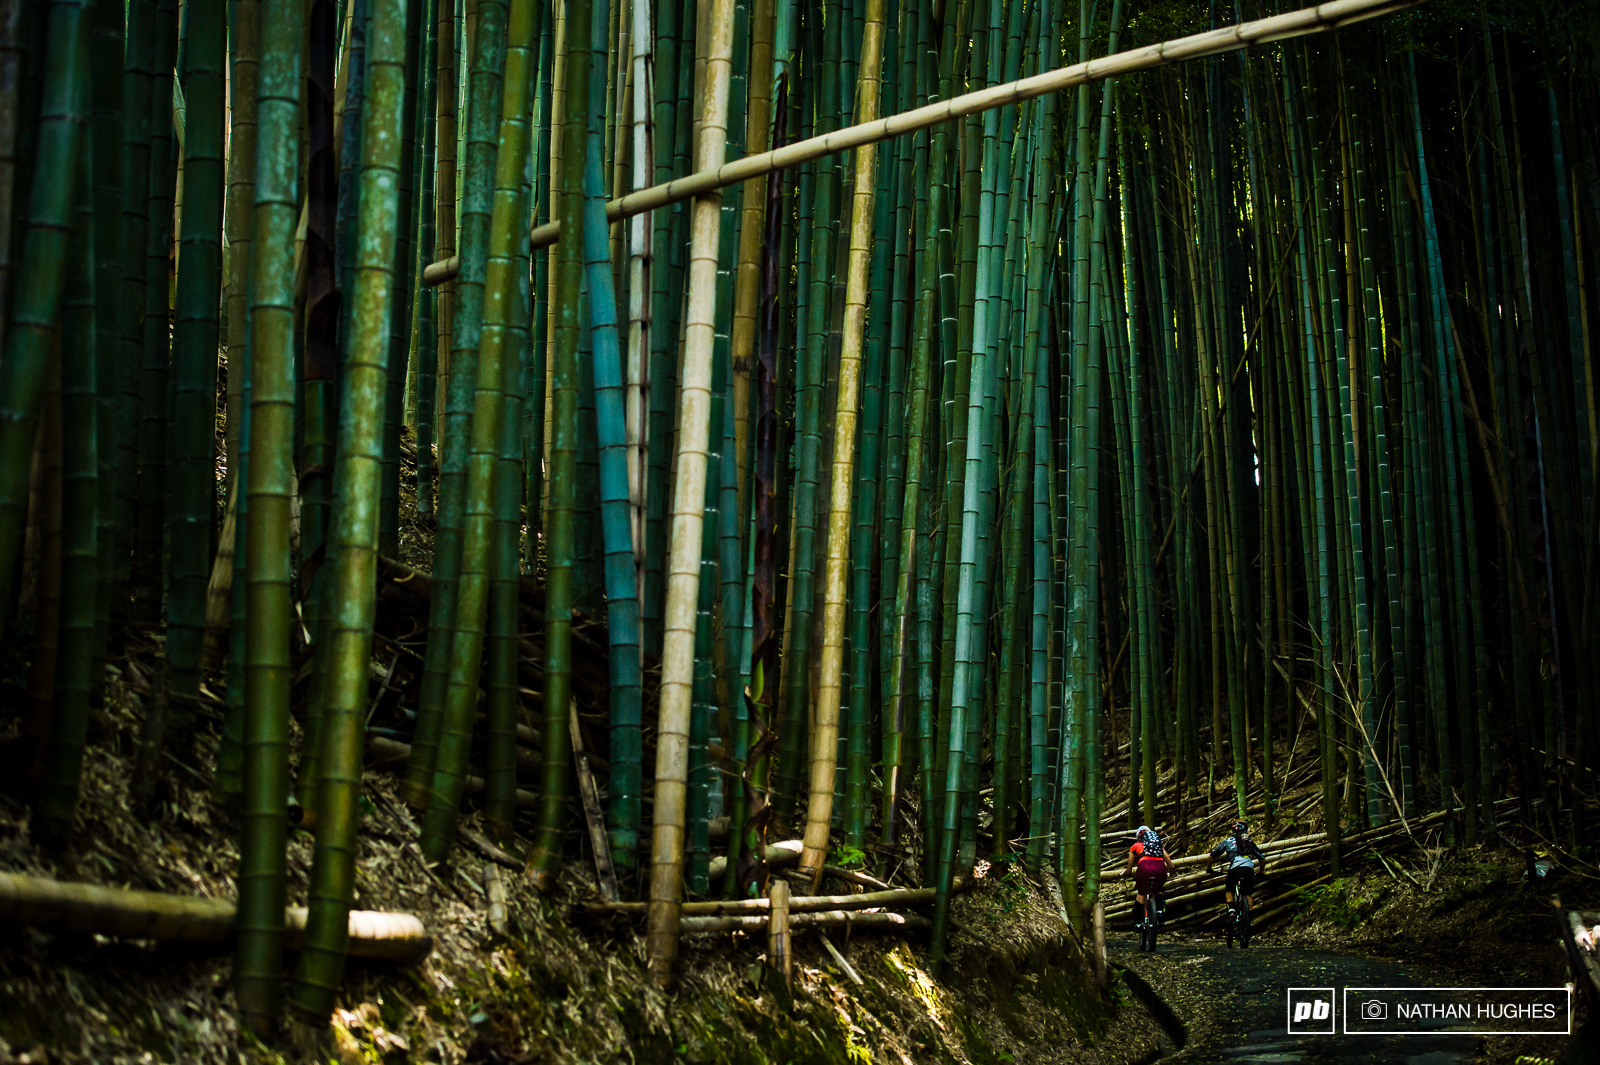 Steff and Bernado head to the trails in Kyoto s bamboo forest.